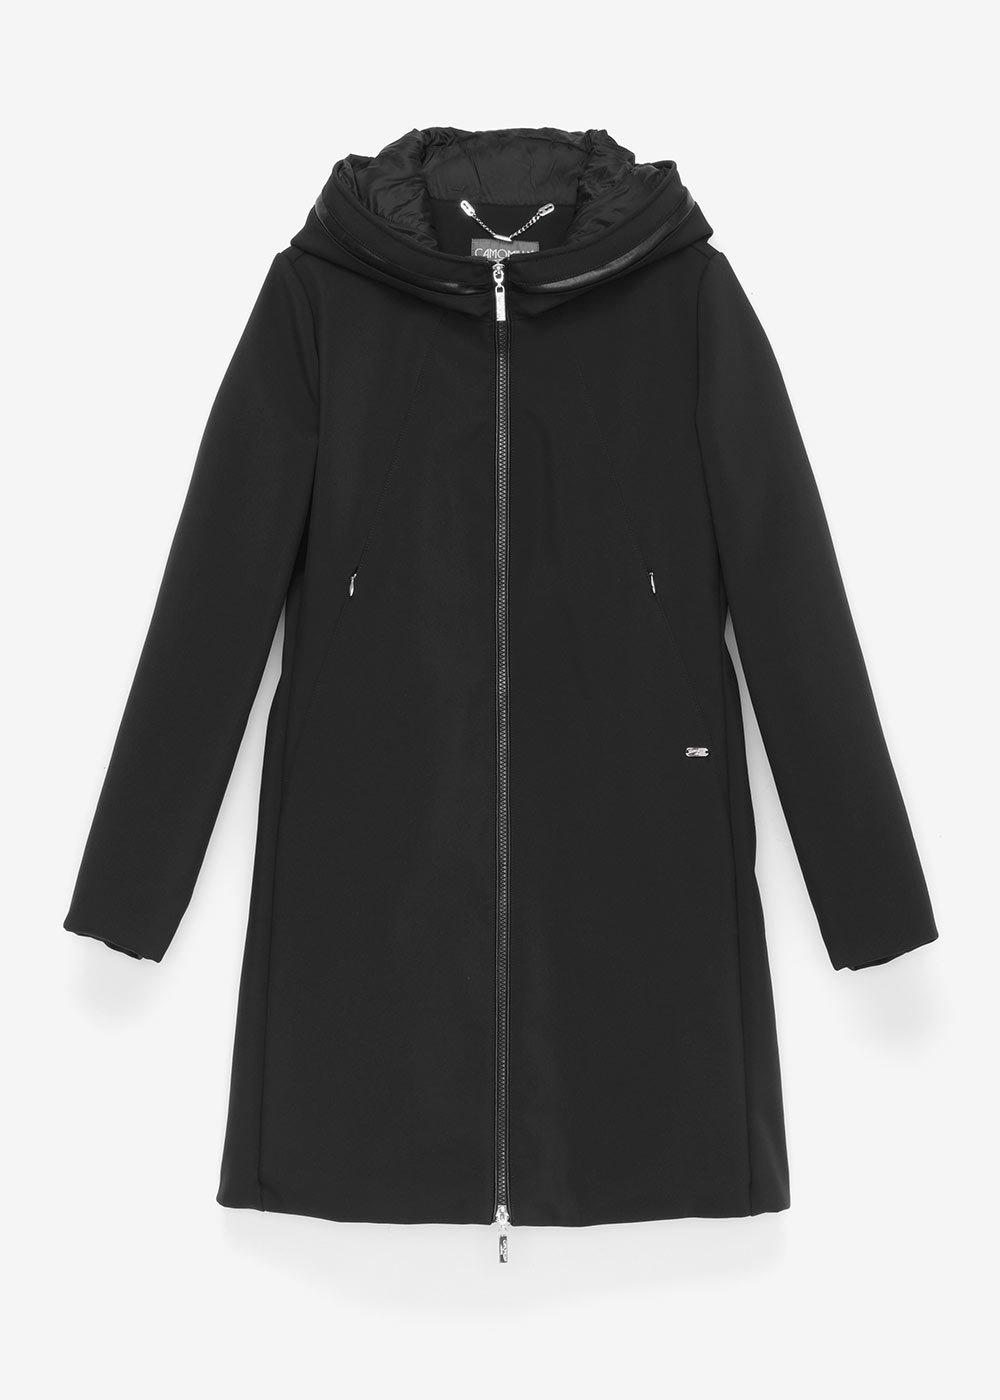 Caril coat with a sporty cut - Black - Woman